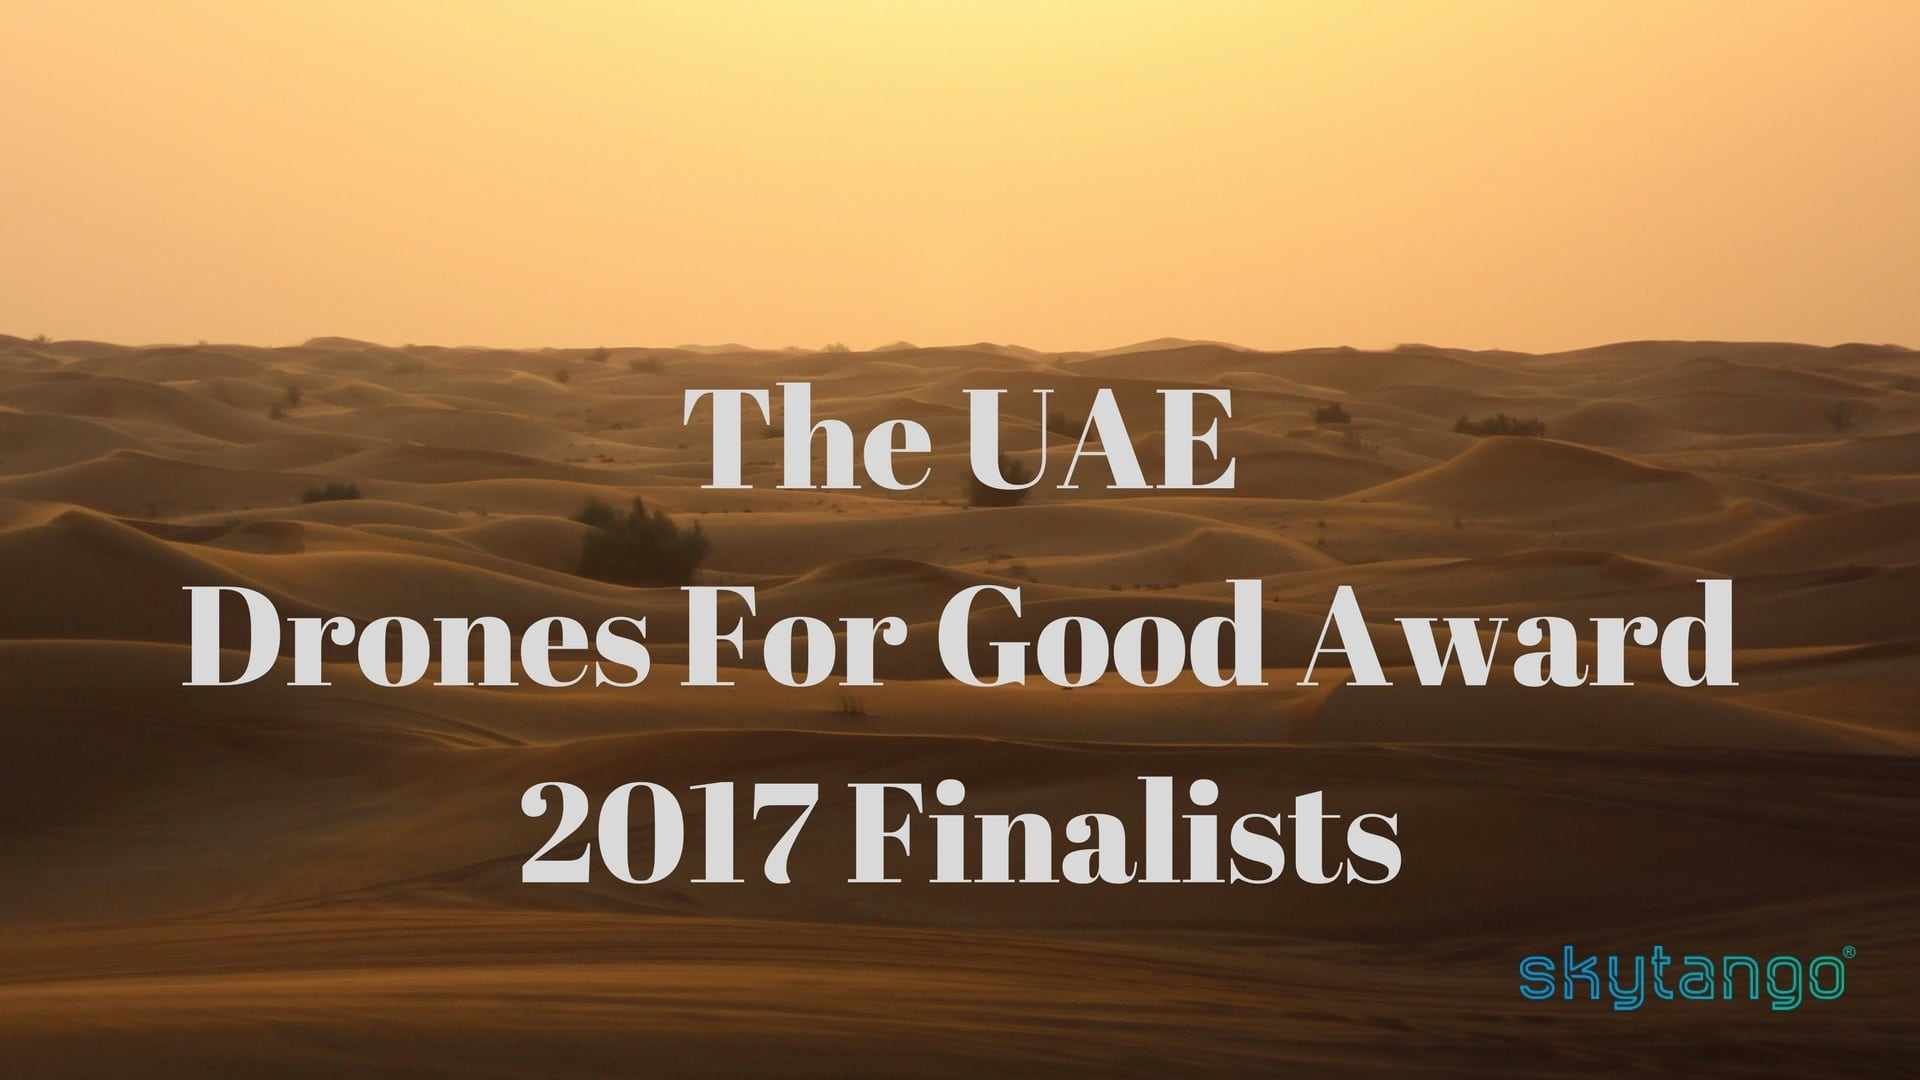 The UAE Drones For Good Award 2017 Finalists